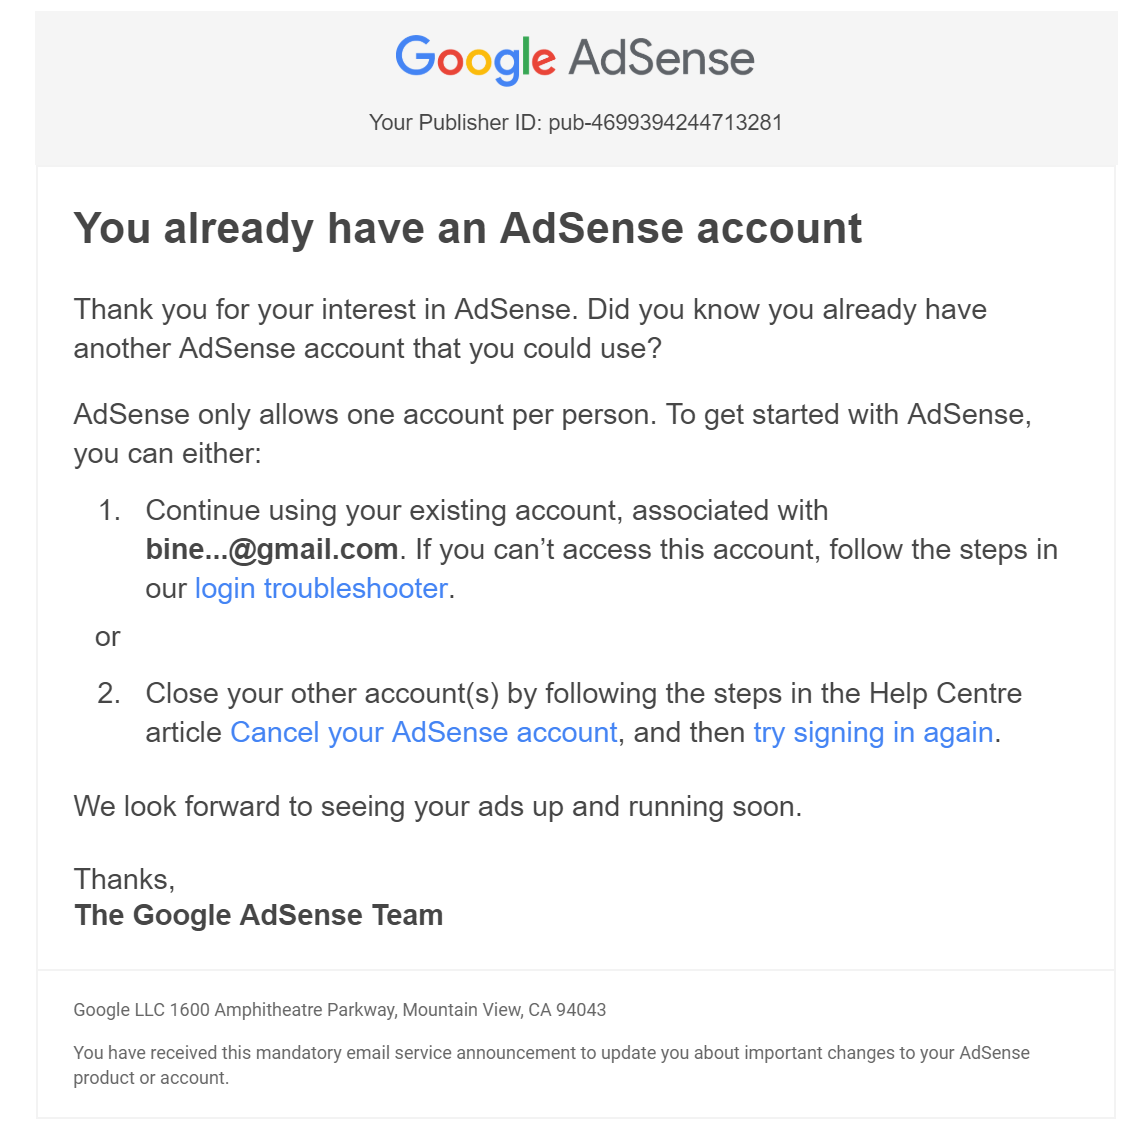 Why I am unable to cancel my AdSense account permanently